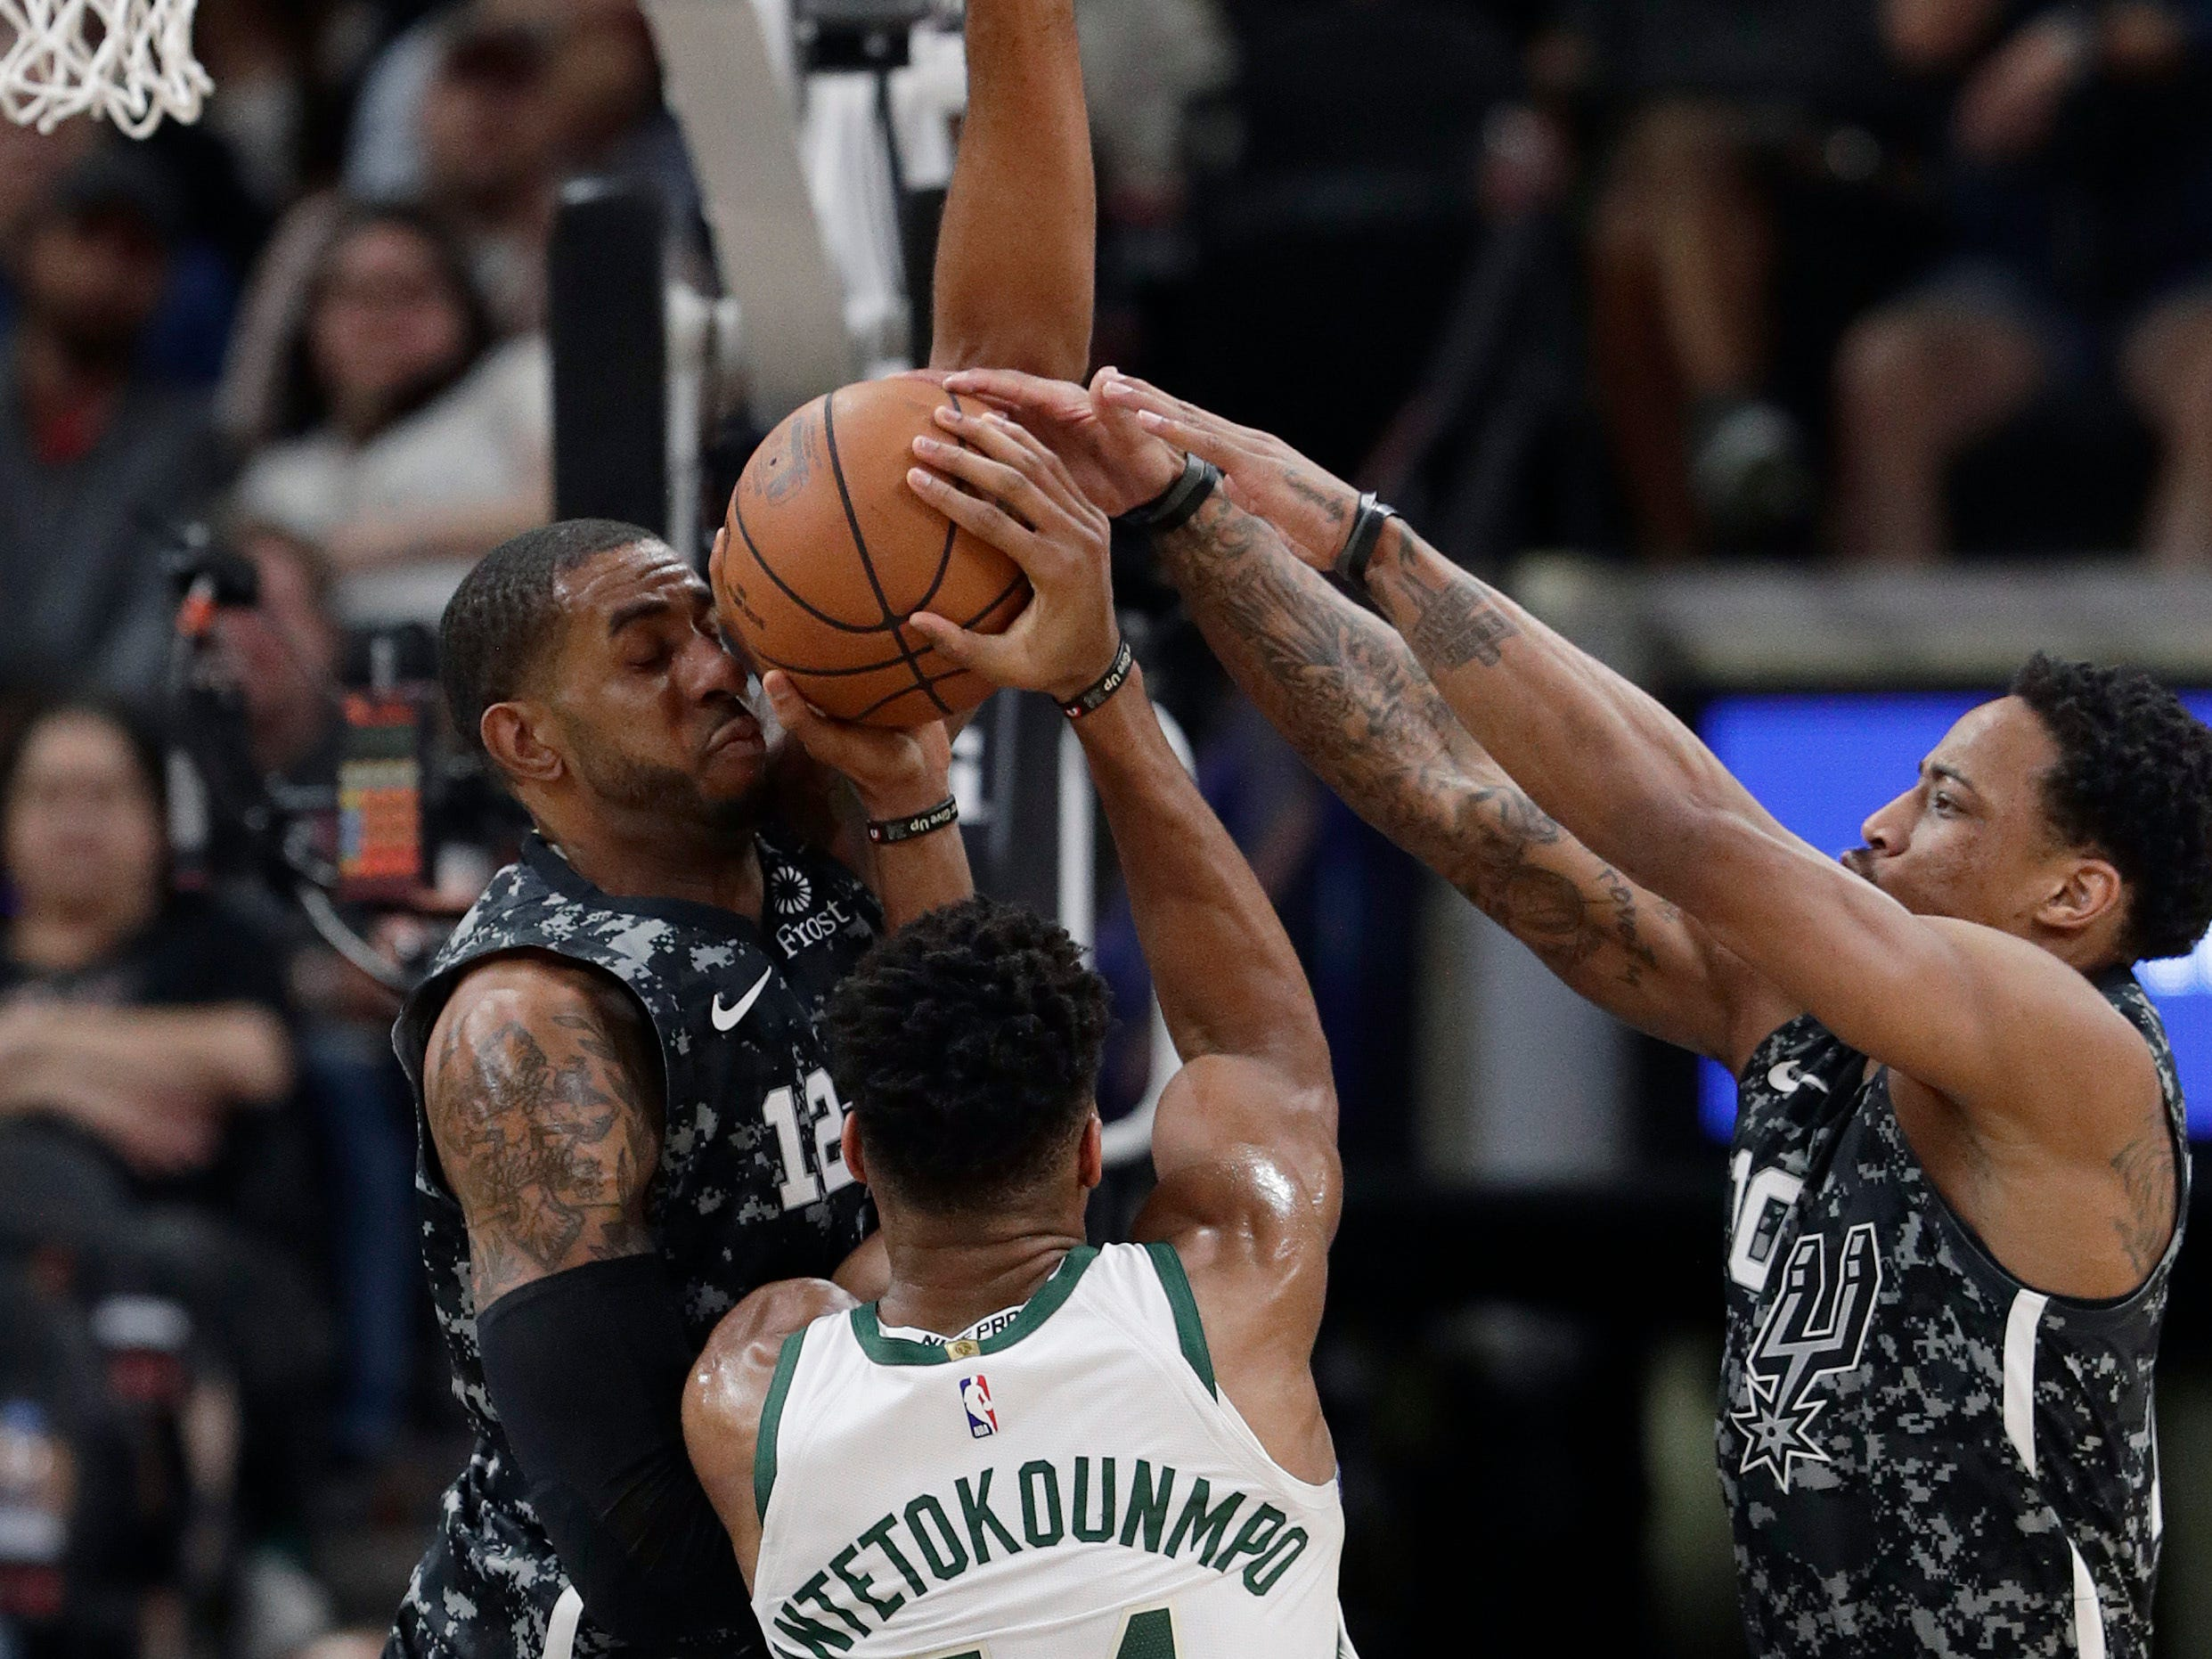 Bucks forward Giannis Antetokounmpo finds the sledding tough as he tries to put on a shot between the Spurs' LaMarcus Aldridge (left) and DeMar DeRozan on Sunday night.